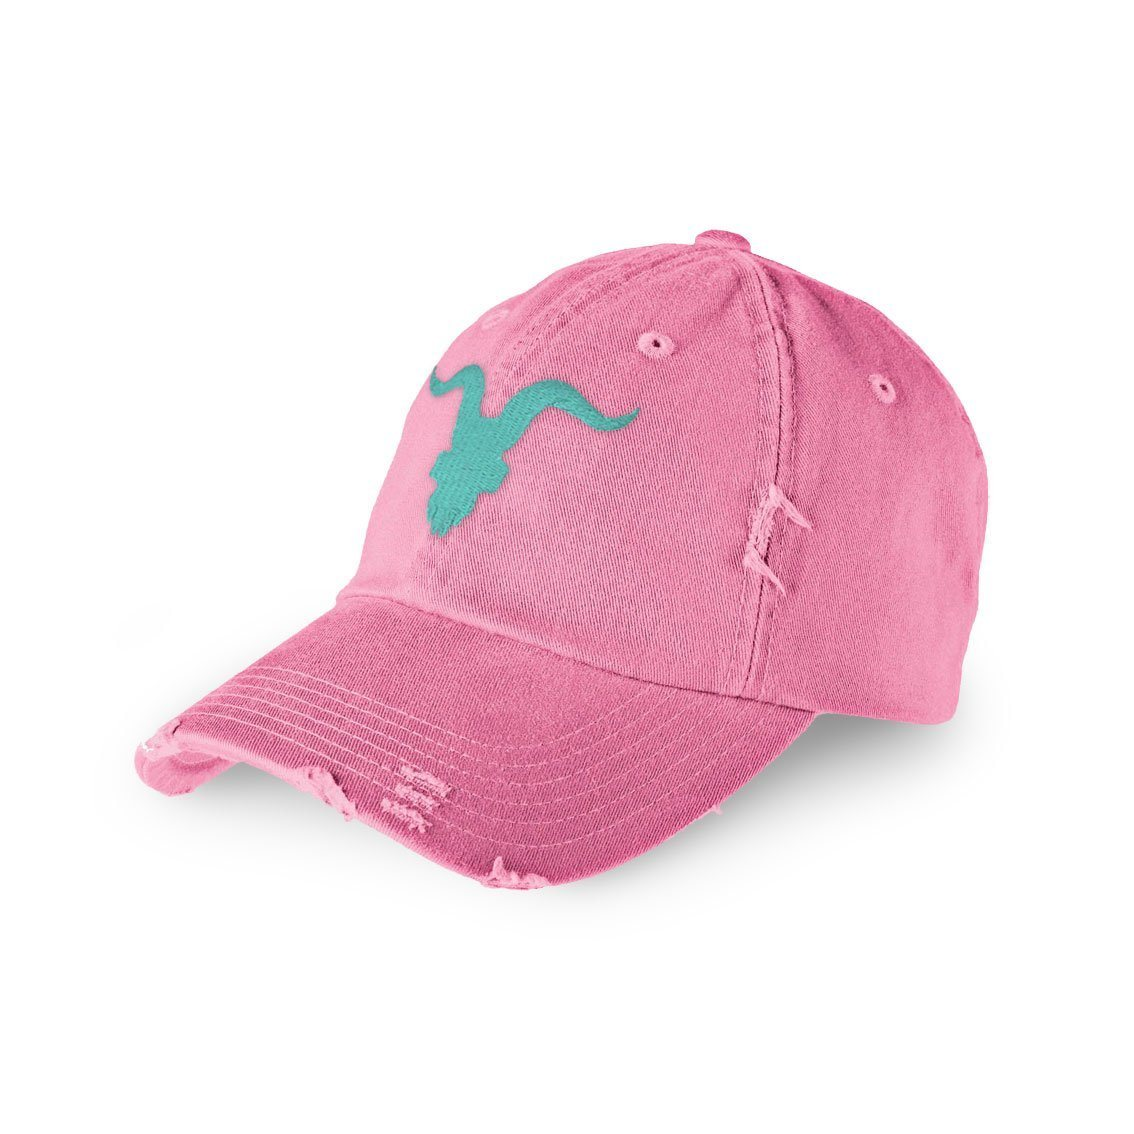 Distressed Dad Hat - Pink with Aqua Logo